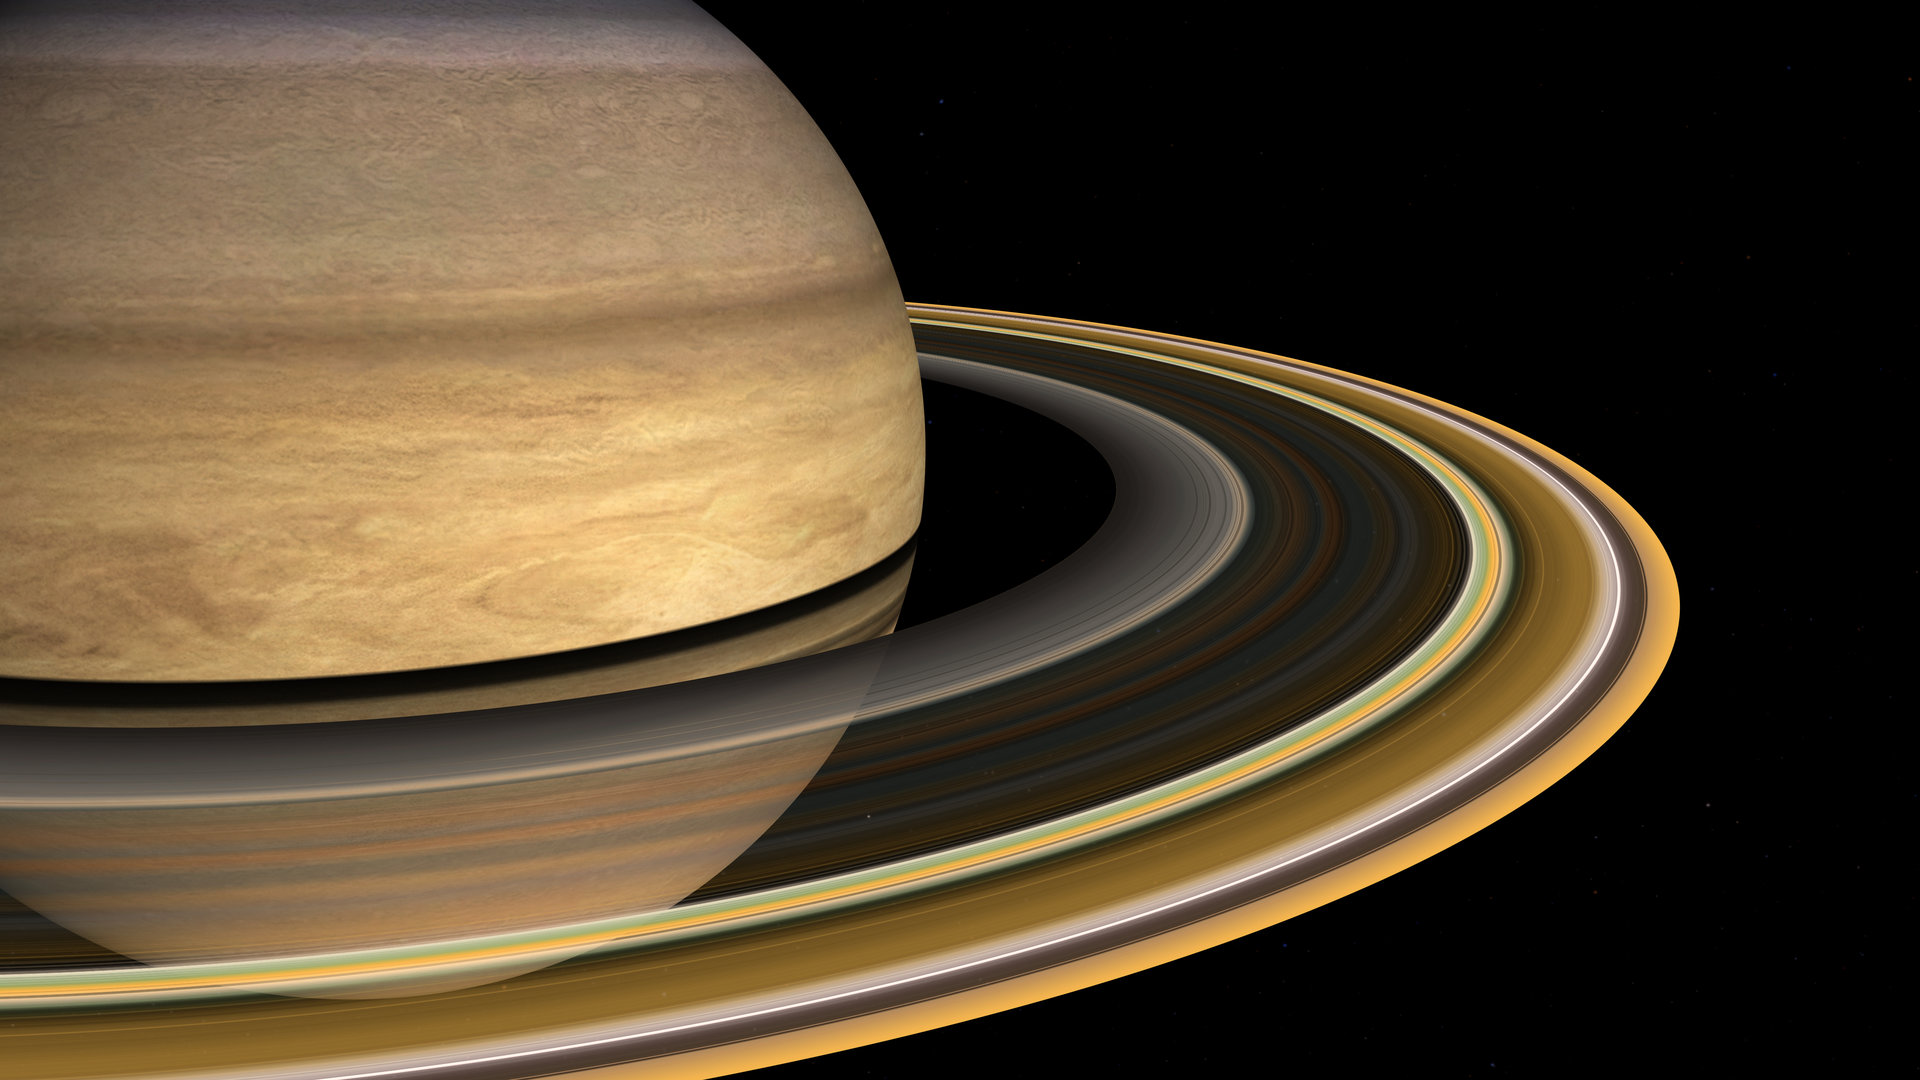 Saturn is the sixth planet from the Sun and is the second largest in the solar system with an equatorial diameter of 119300 km Saturn is visibly flattened at the